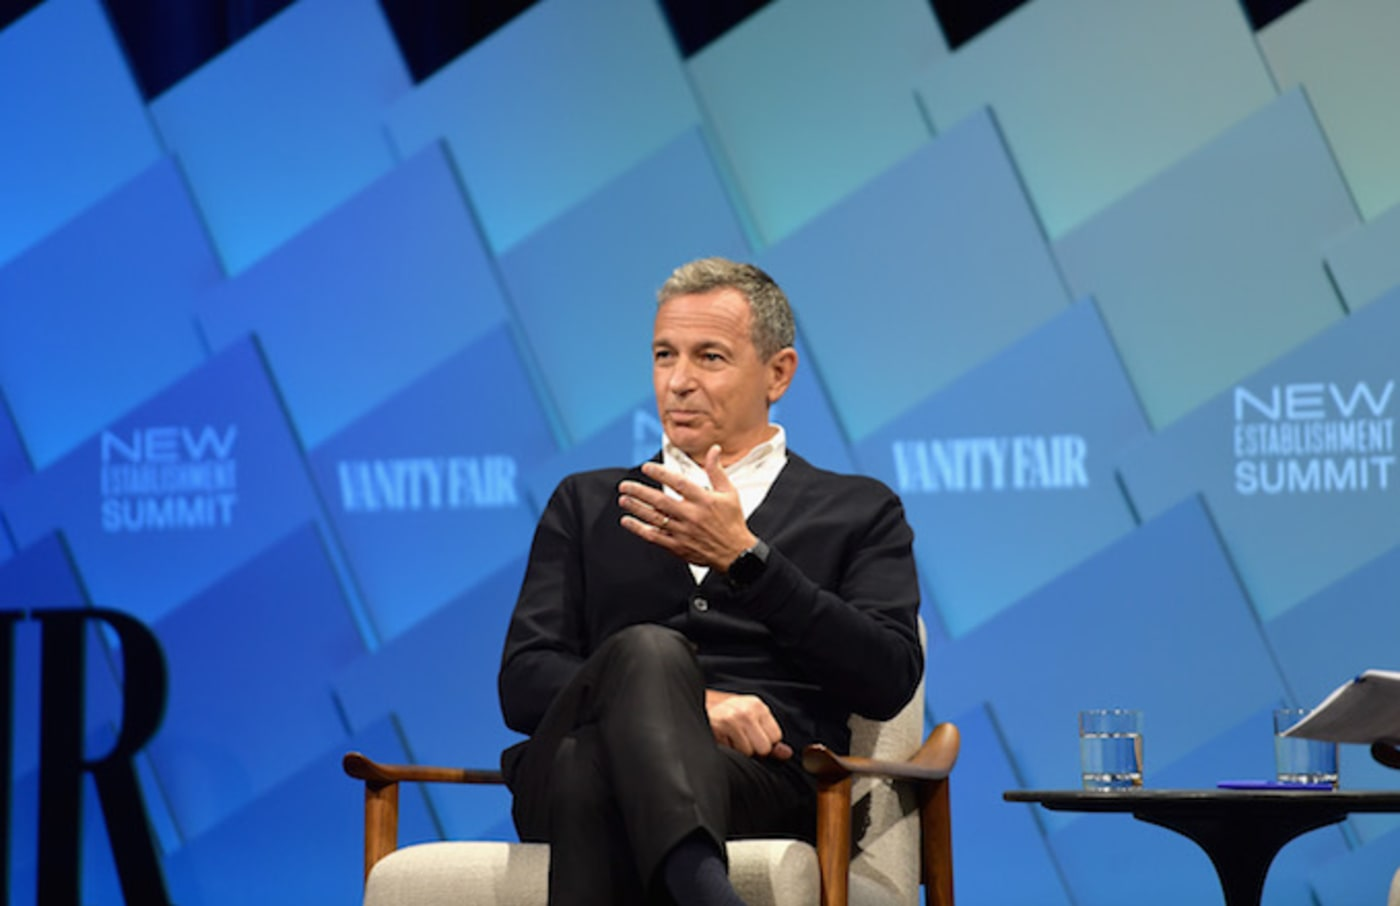 Robert A. Iger speaks onstage at Day 1 of the Vanity Fair New Establishment Summit 2018.